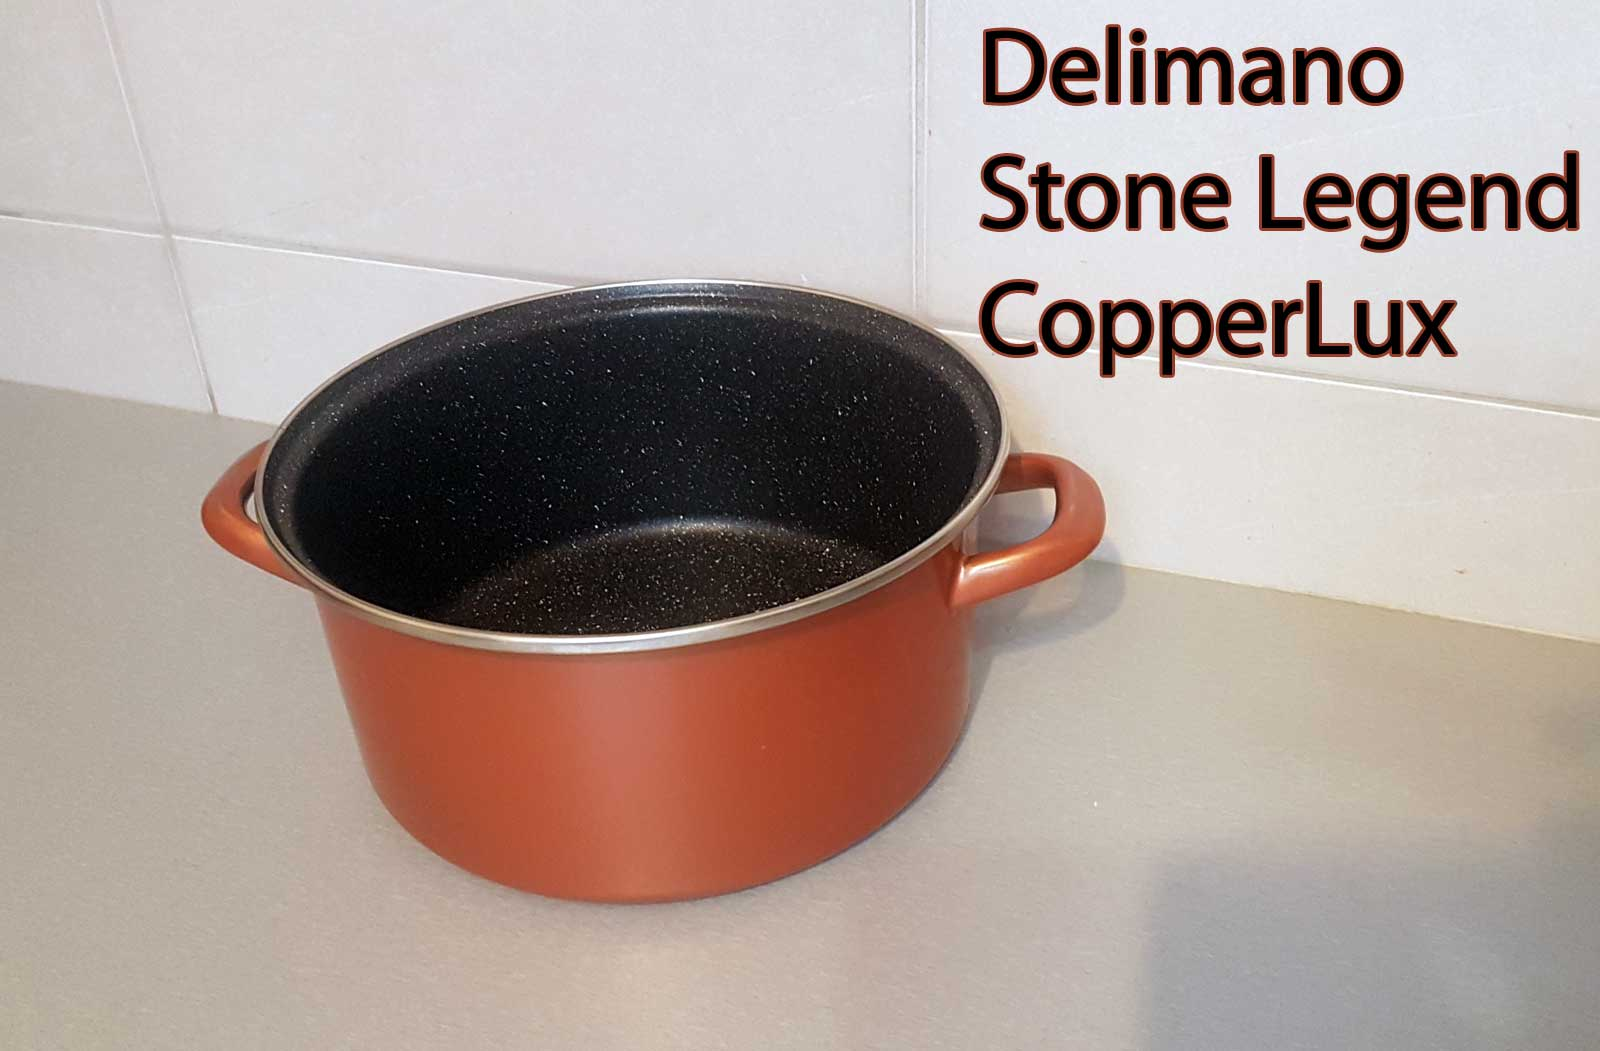 Garnek Delimano Stone Legend Copperlux